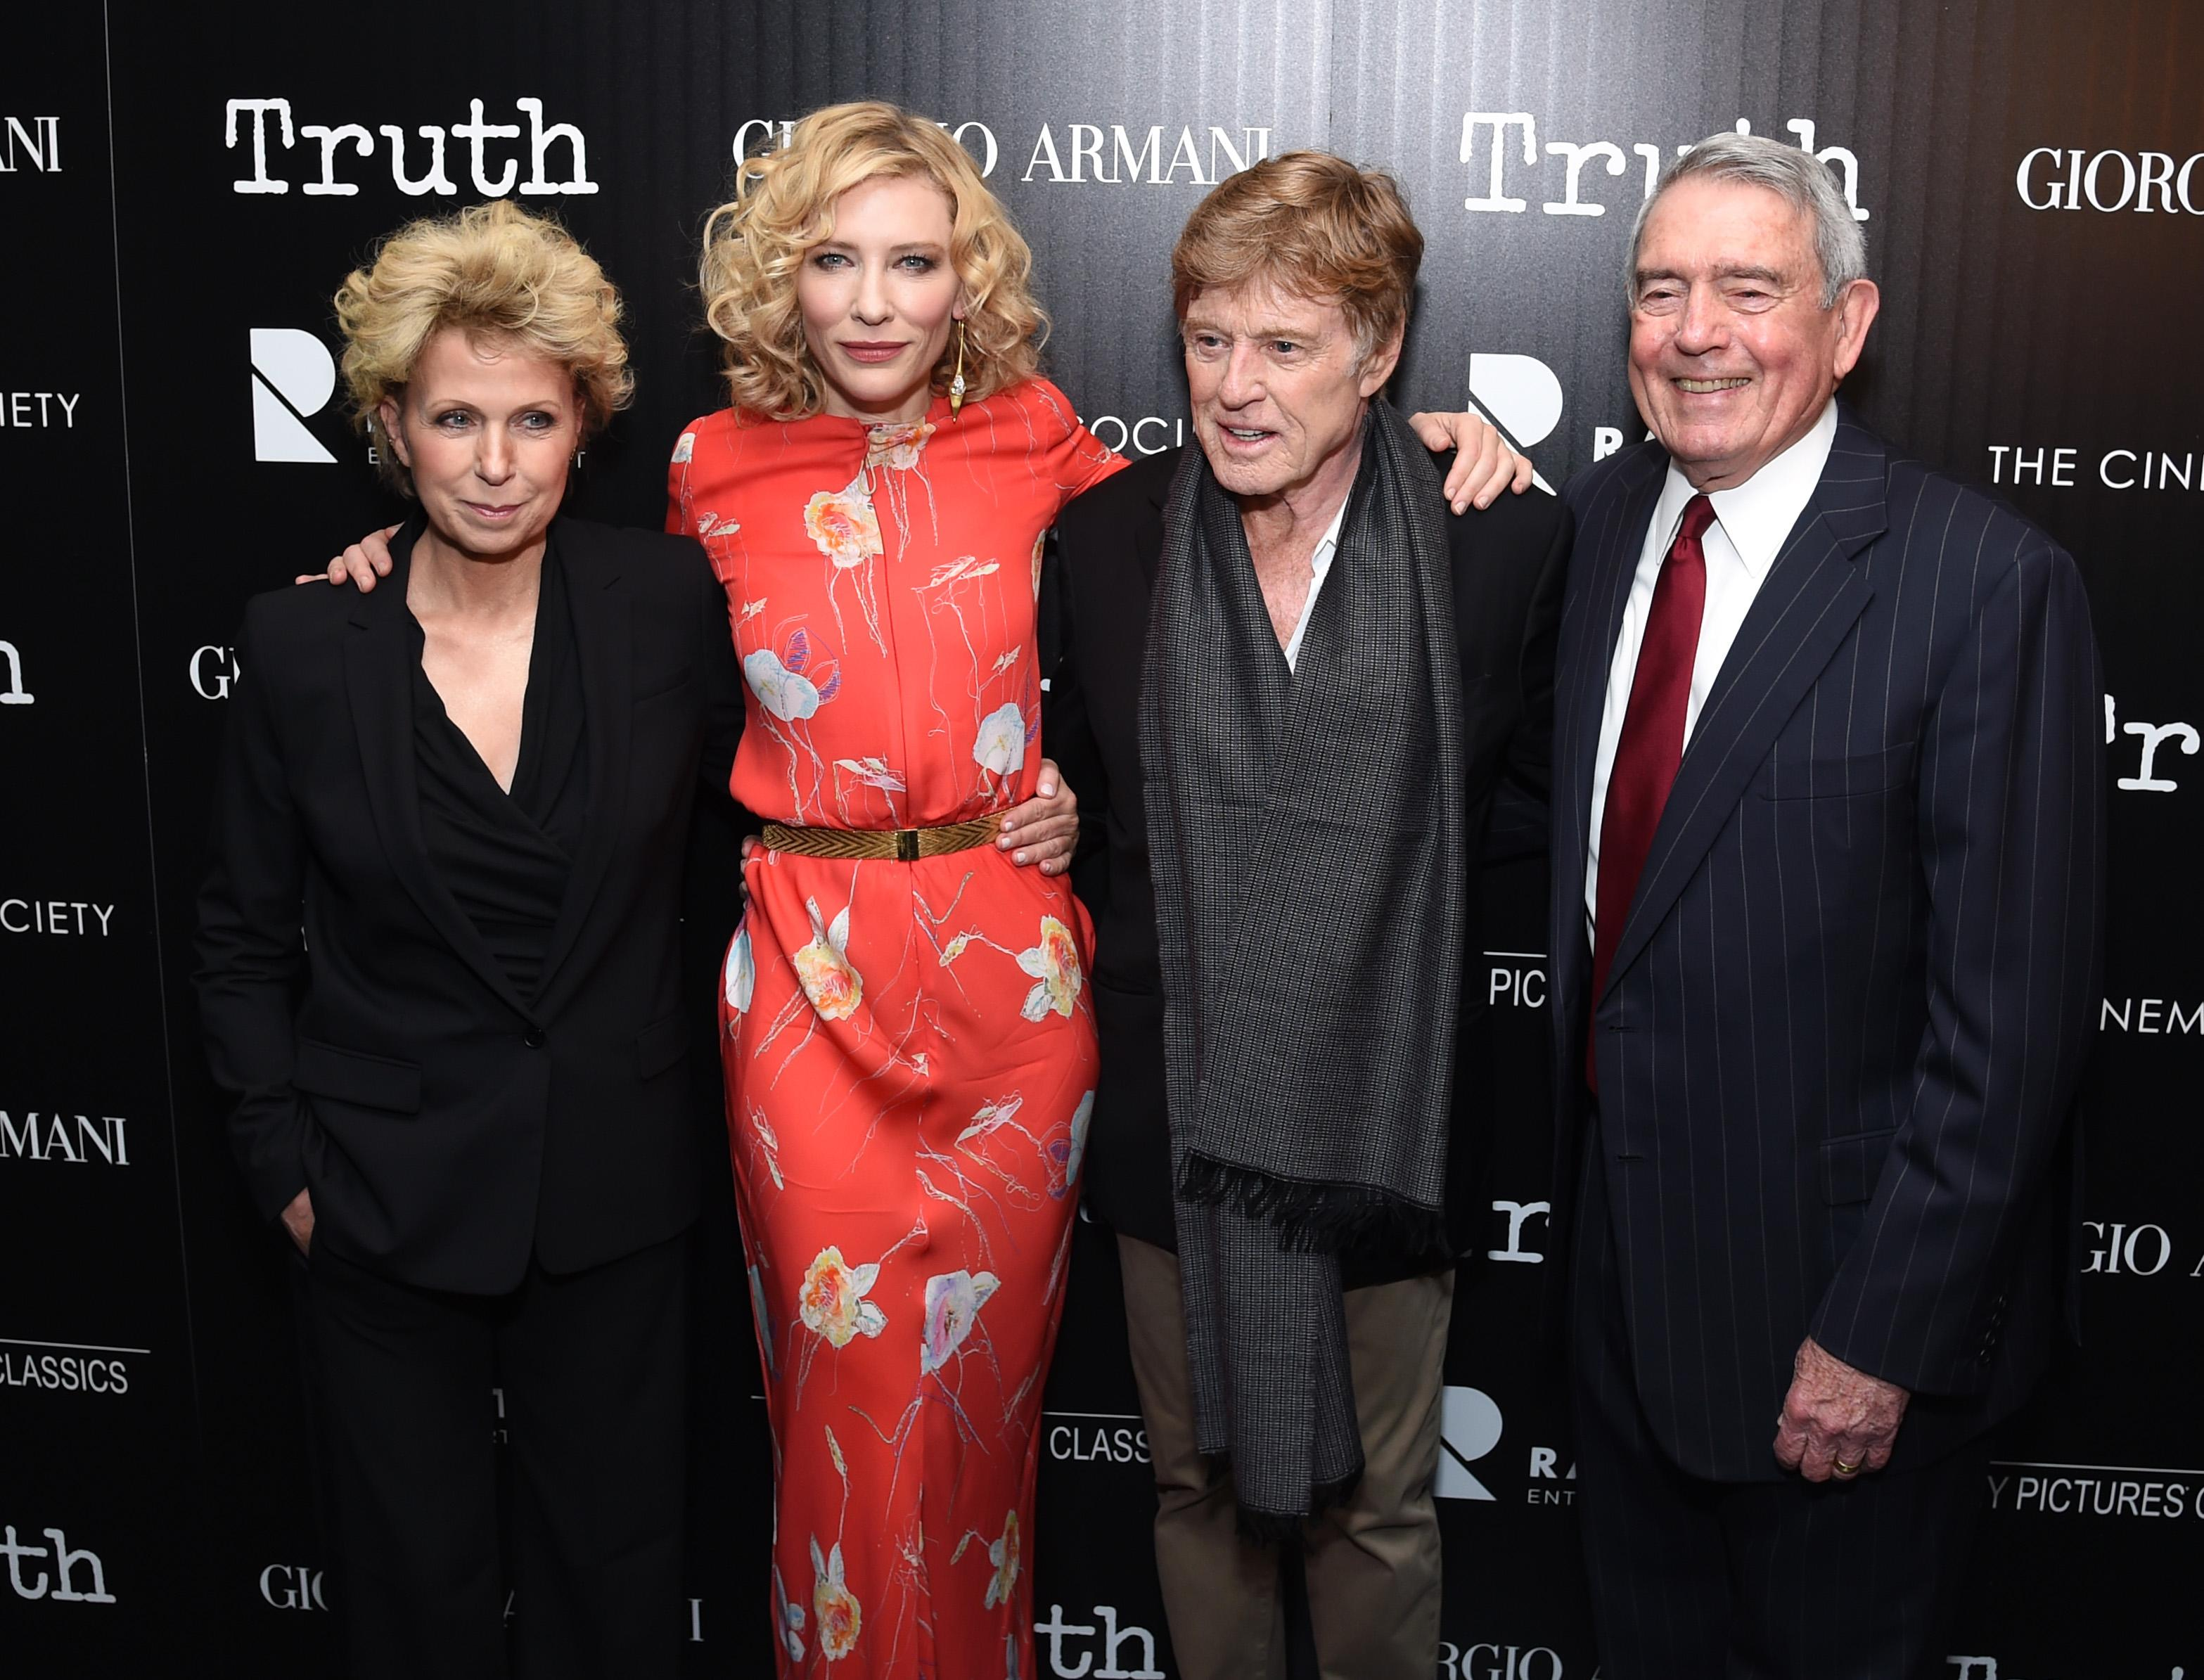 Mary Mapes, Dan Rather Join Stars Cate Blanchett, Robert Redford at 'Truth' Screening